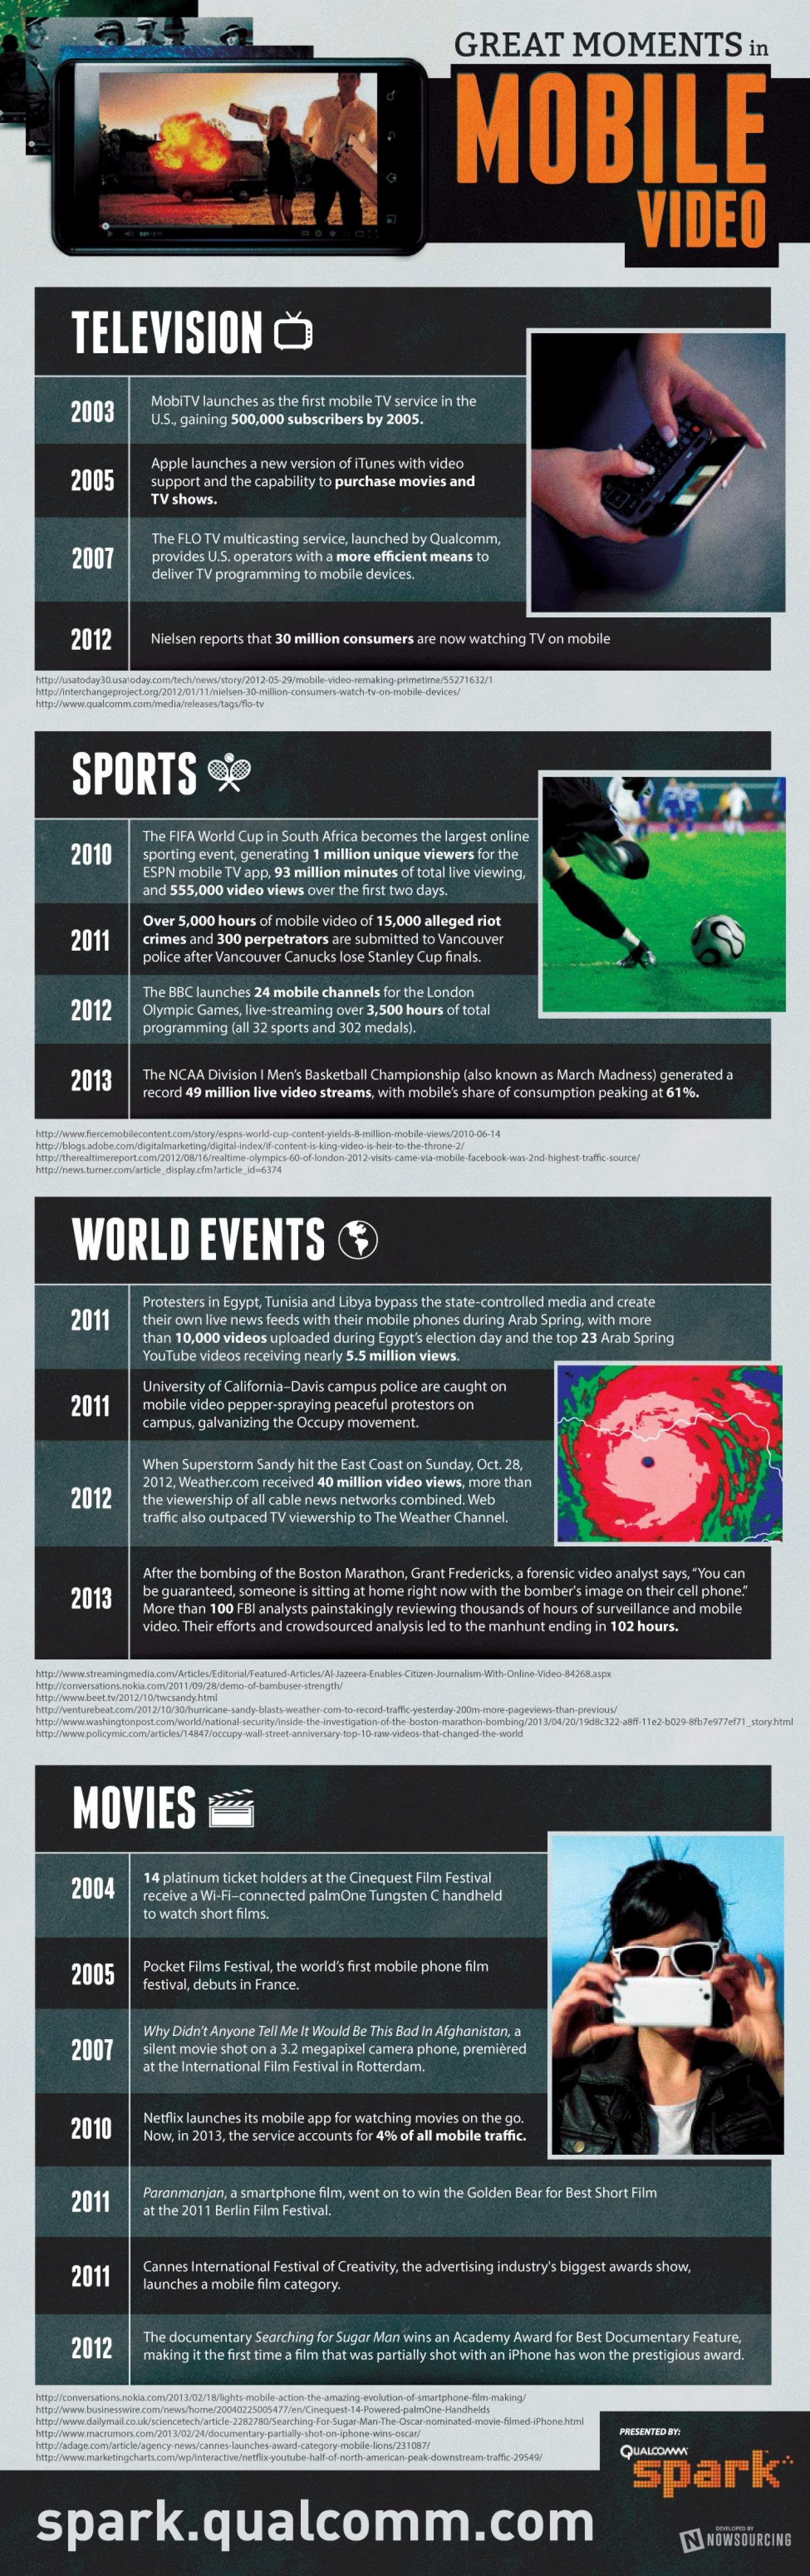 Great Moments in Mobile Video Infographic